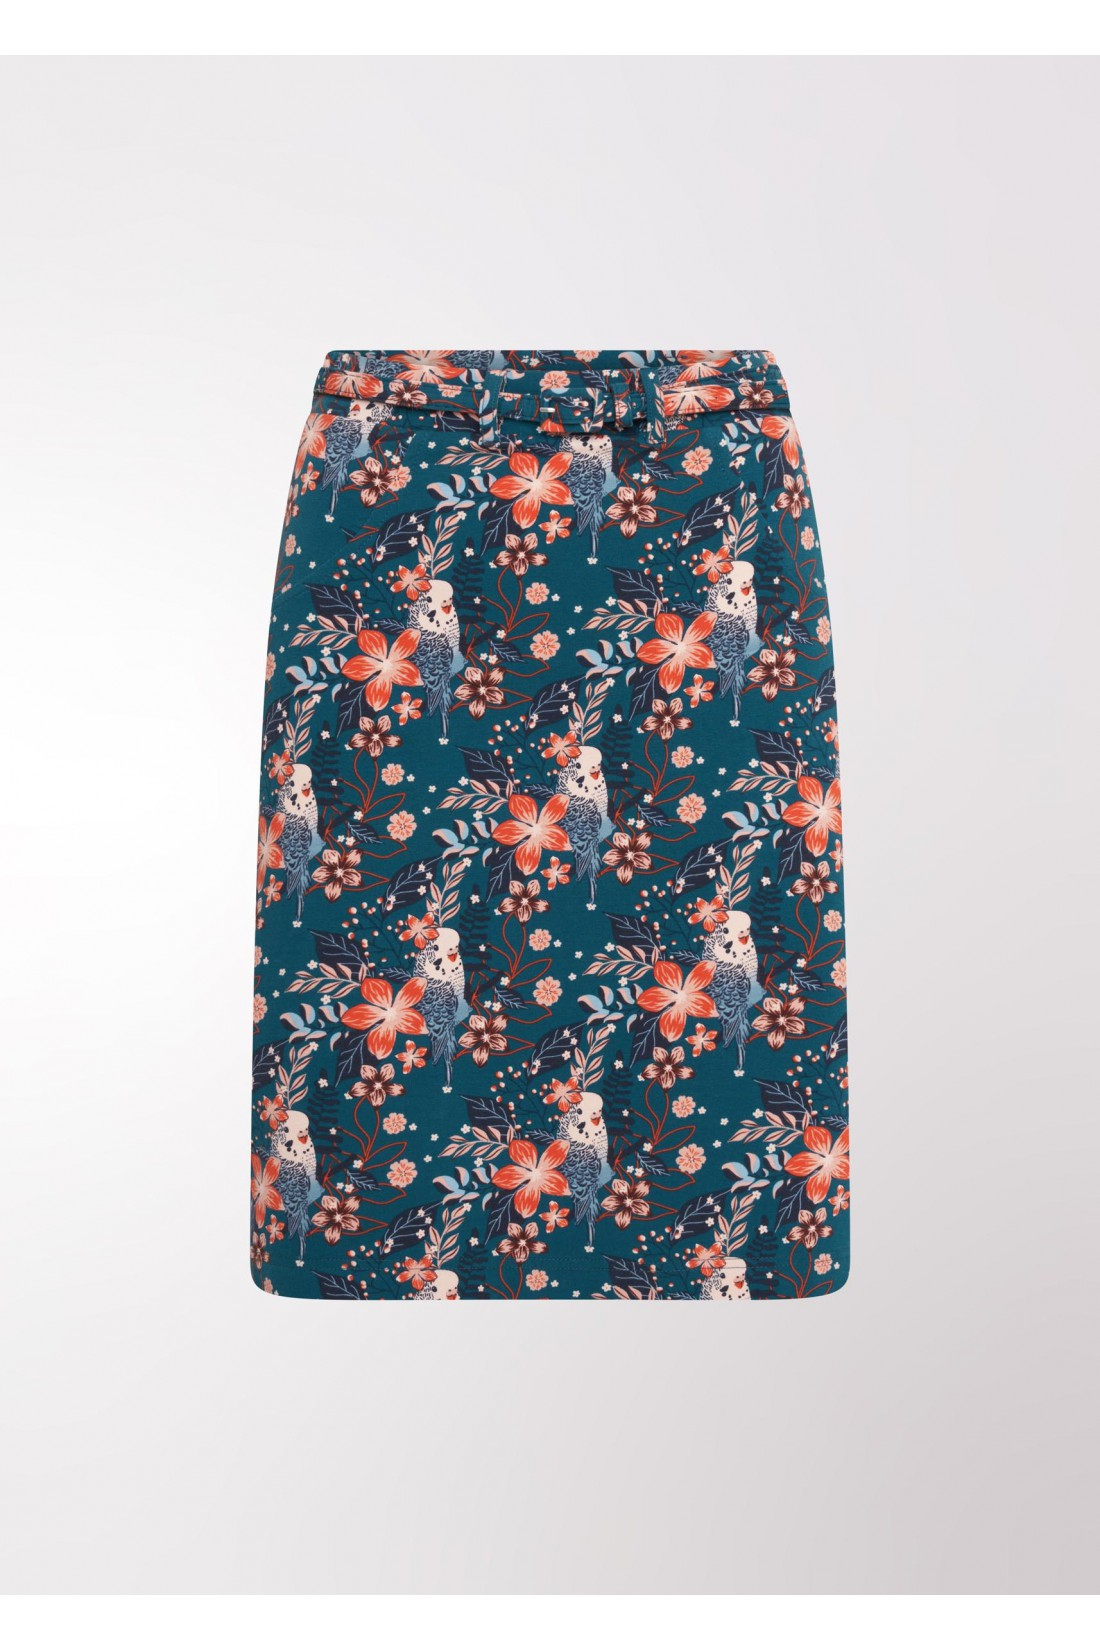 original blue floral skirt 4FF, Music is my way of life